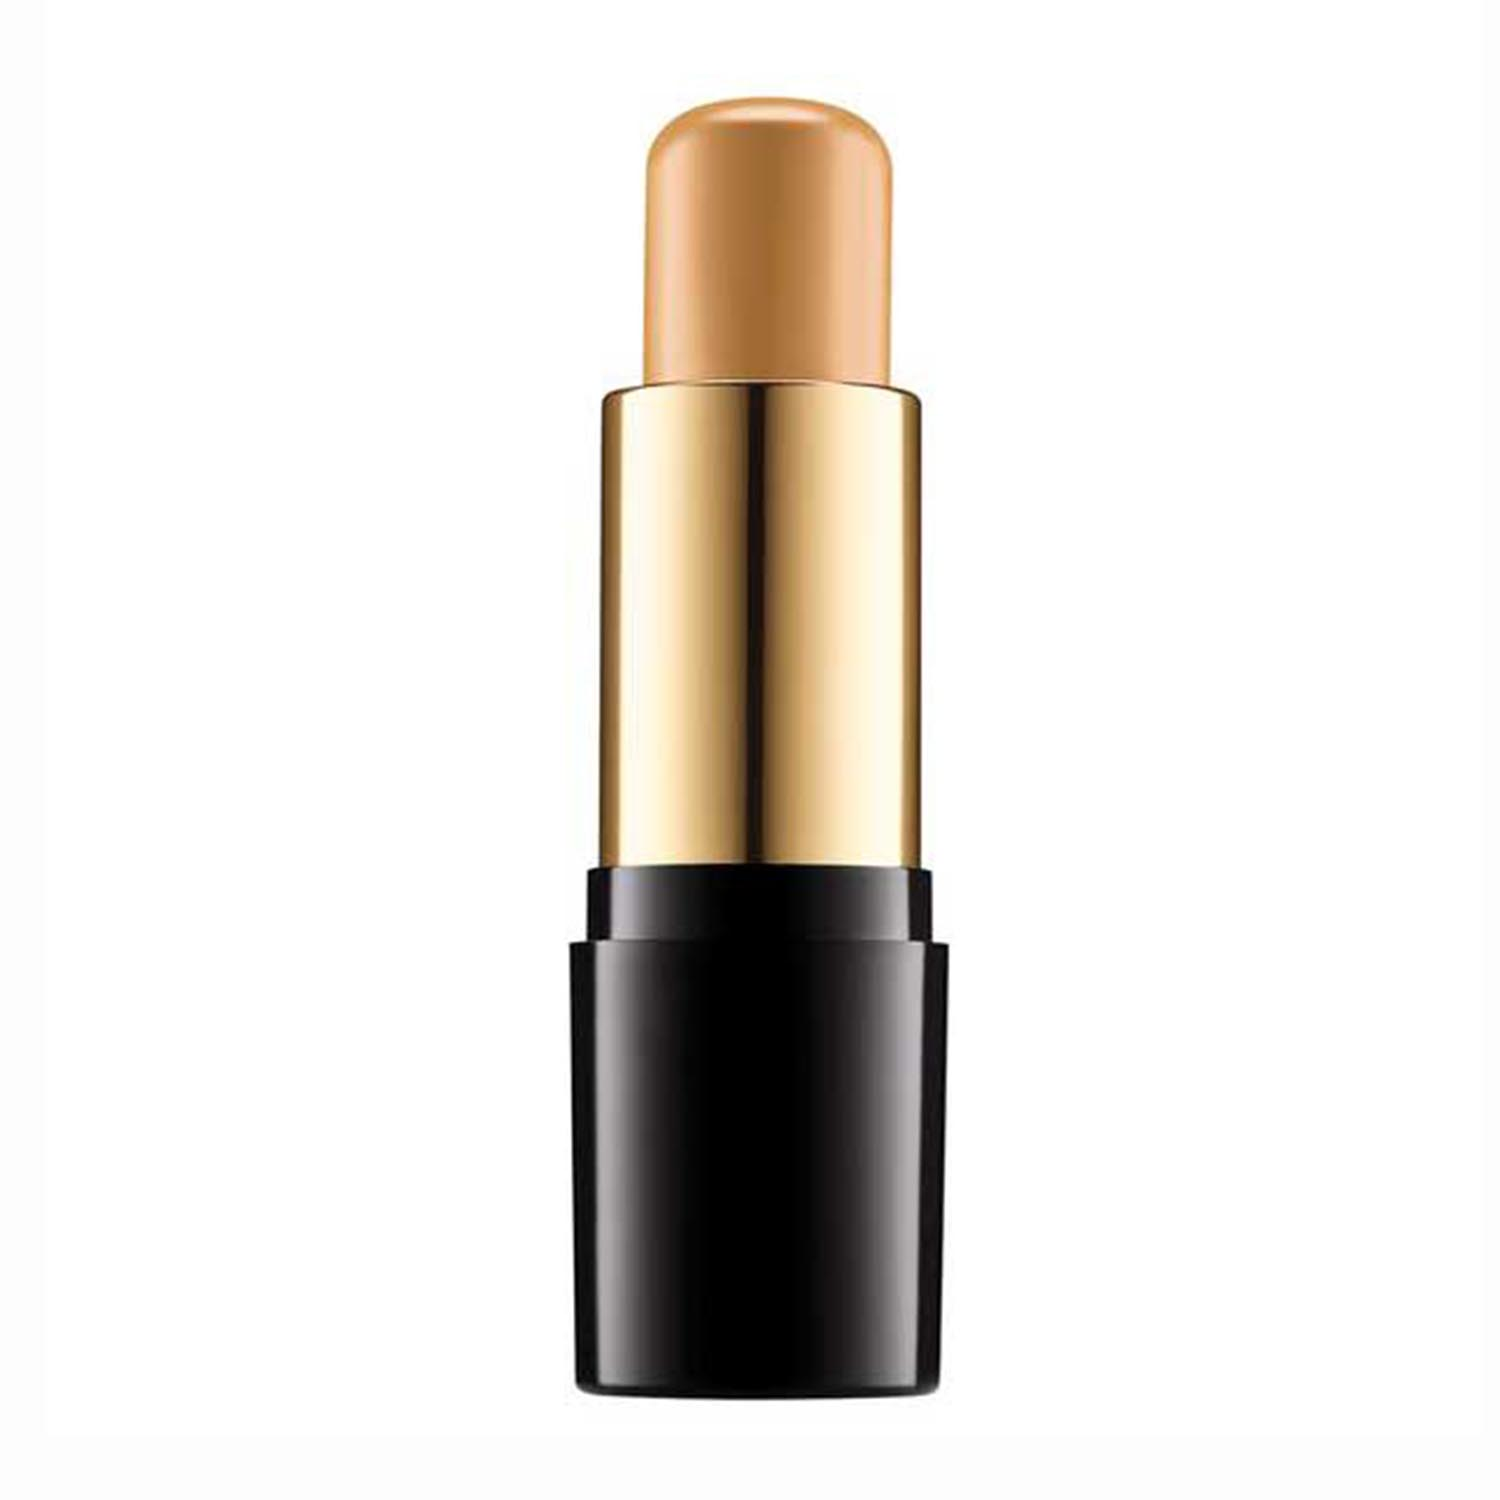 Lancome teint idole ultra stick foundation 06 beige cannelle